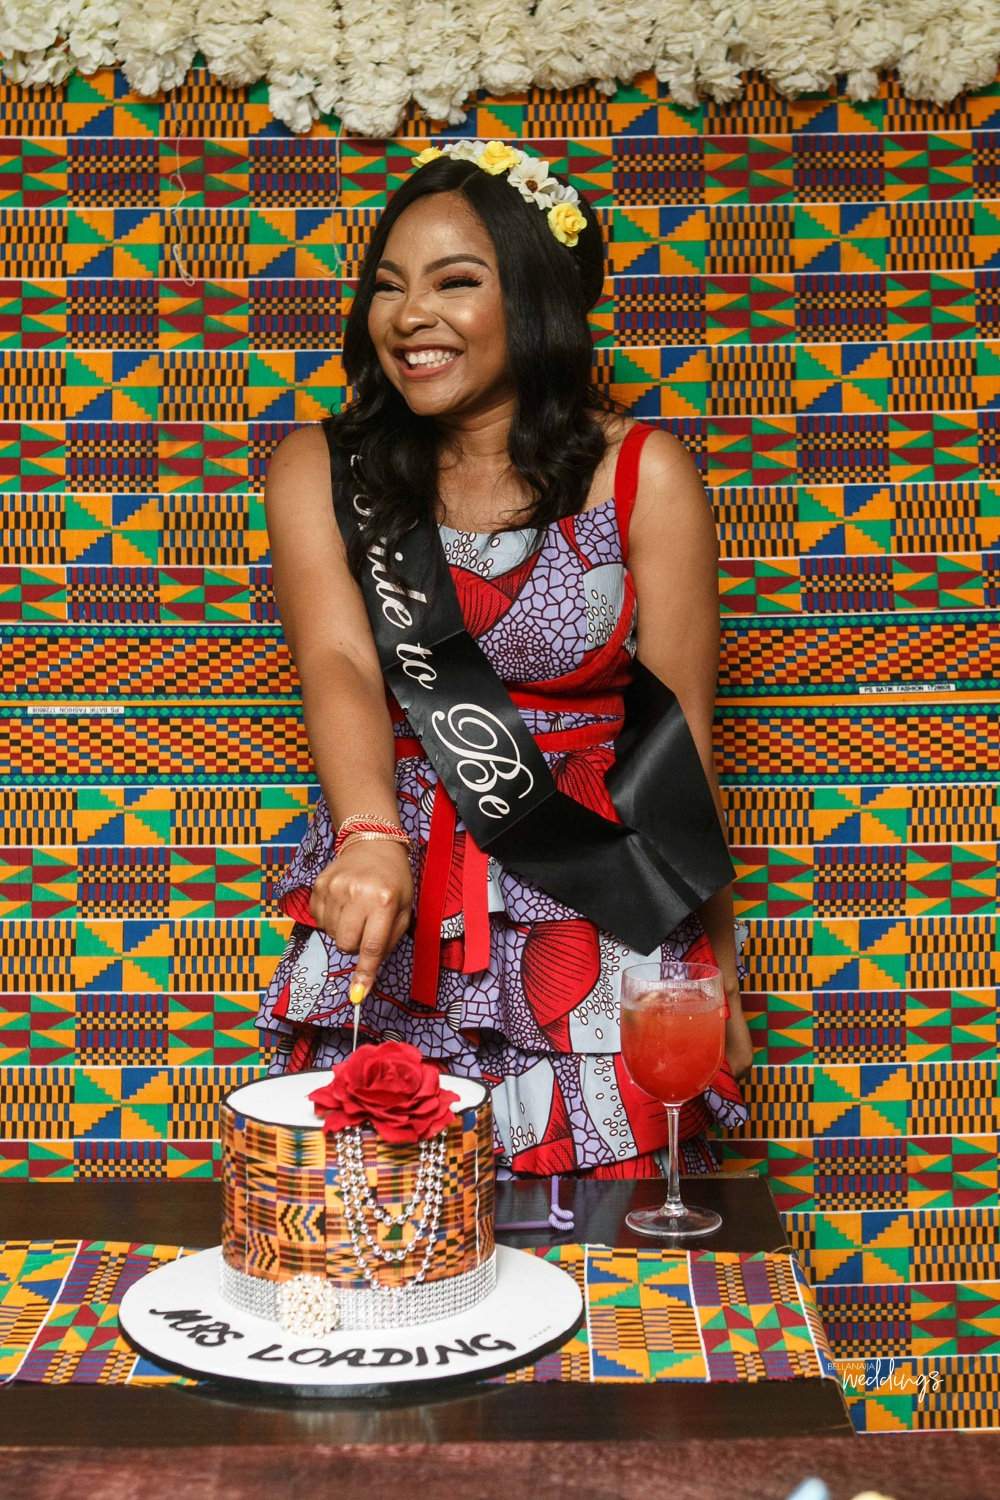 linda ejiofors safari themed surprise bridal shower will swing you into a beautiful day